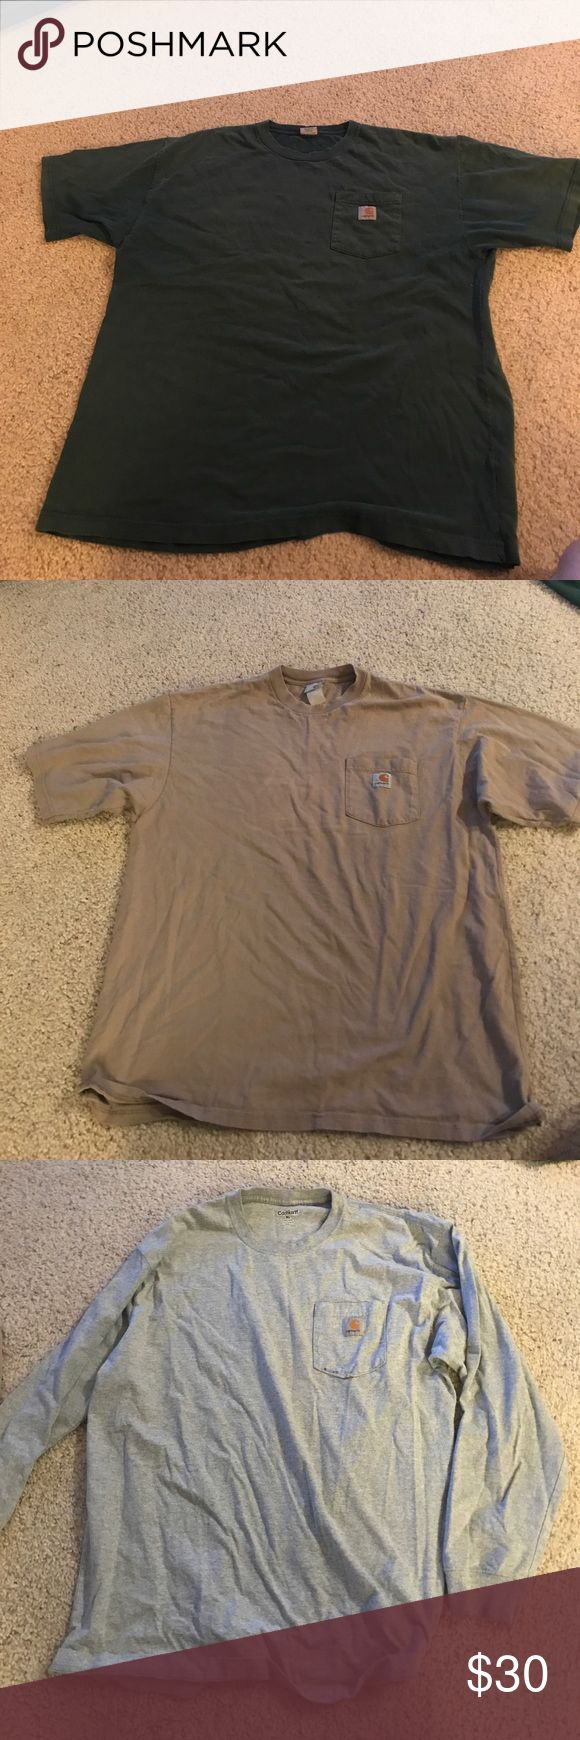 Carhartt shirts lot of 3 3 carhartt shirts. 2 short sleeve, 1 long sleeve. Long sleeve has small stain on pocket. All XL in used condition Carhartt Shirts Tees - Short Sleeve